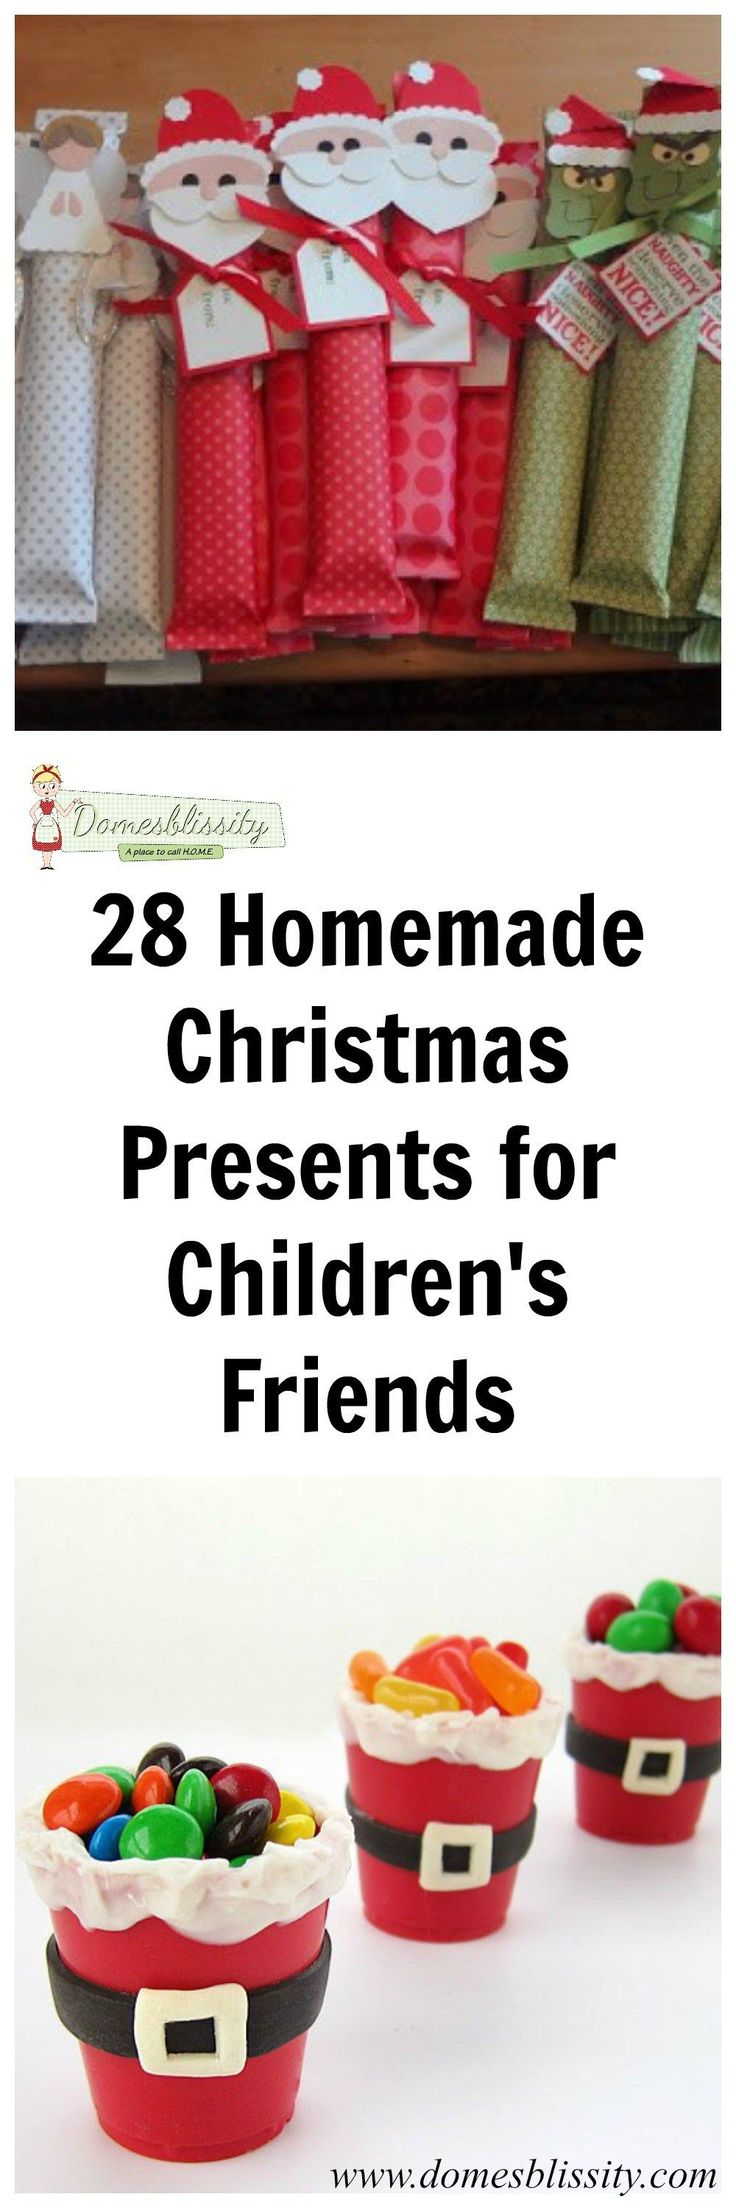 28 homemade Christmas presents for children's friends - Domesblissity